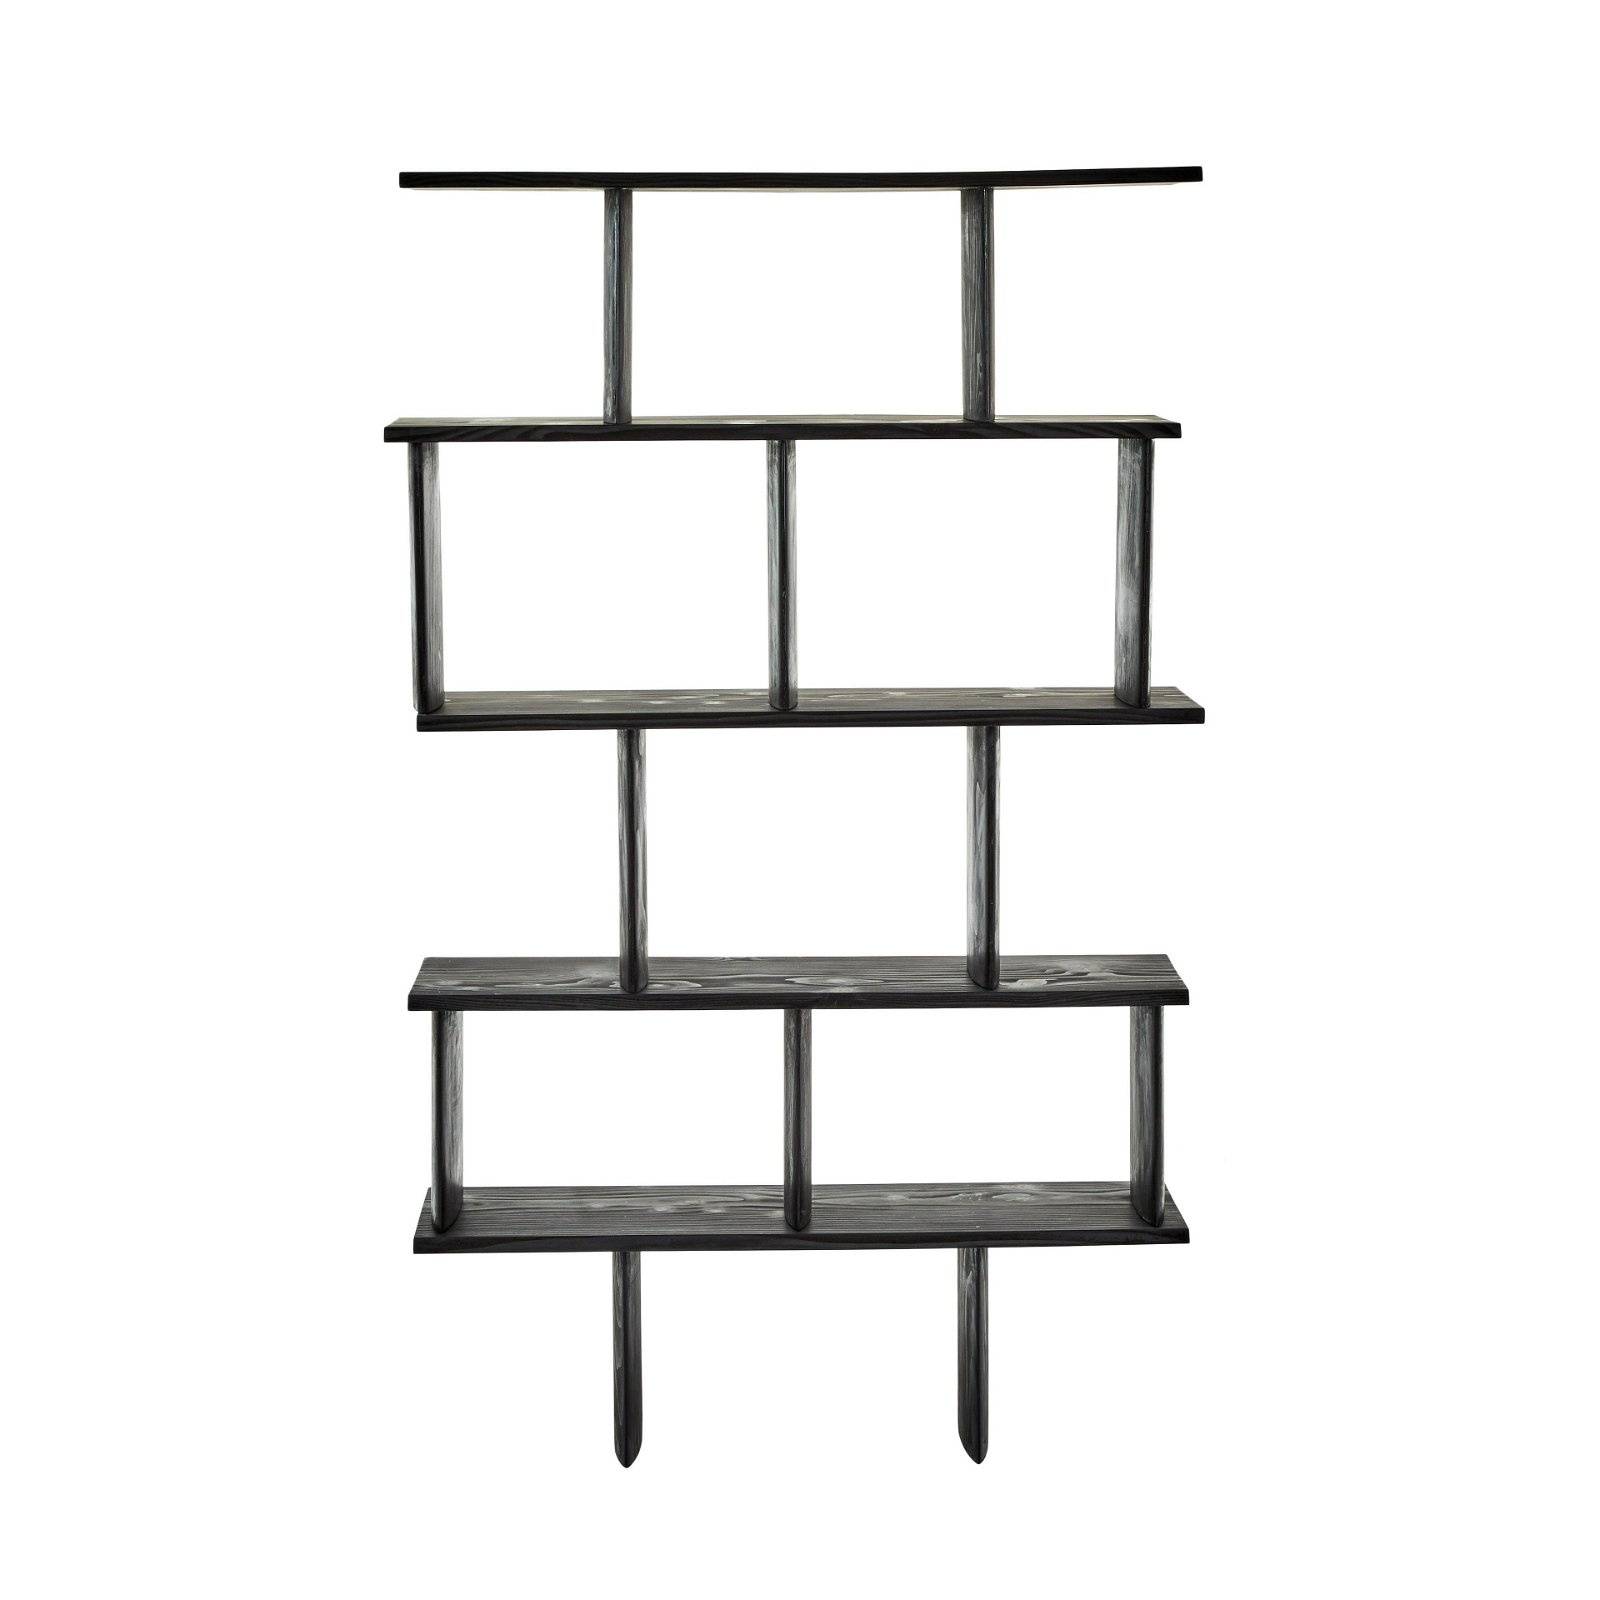 Charlotte Perriand and Pierre Jeanneret Style Bookshelf